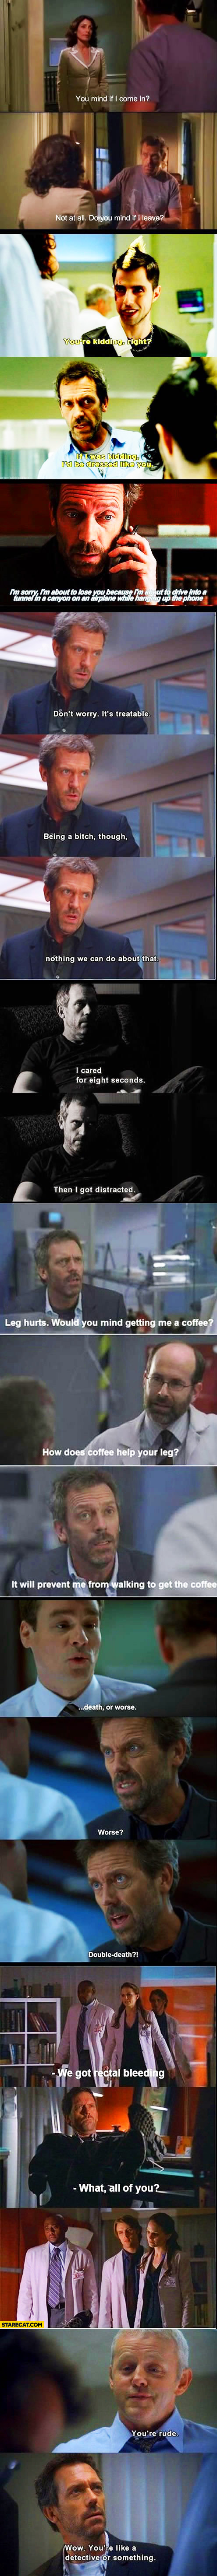 Dr House best quotes moments